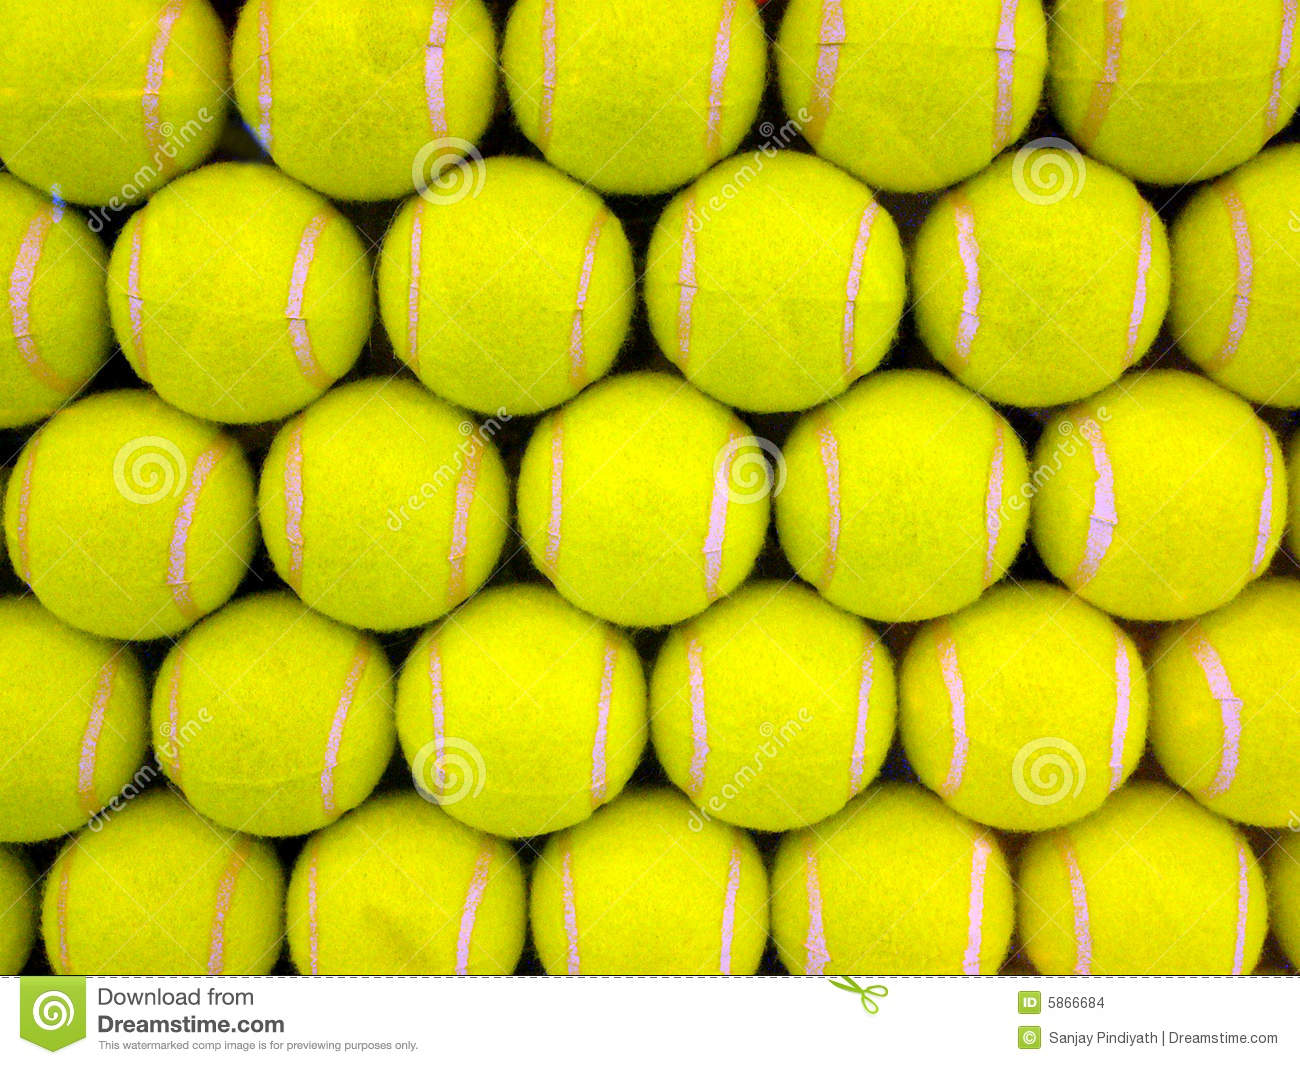 Tennis Balls Stock Images - Image: 5866684